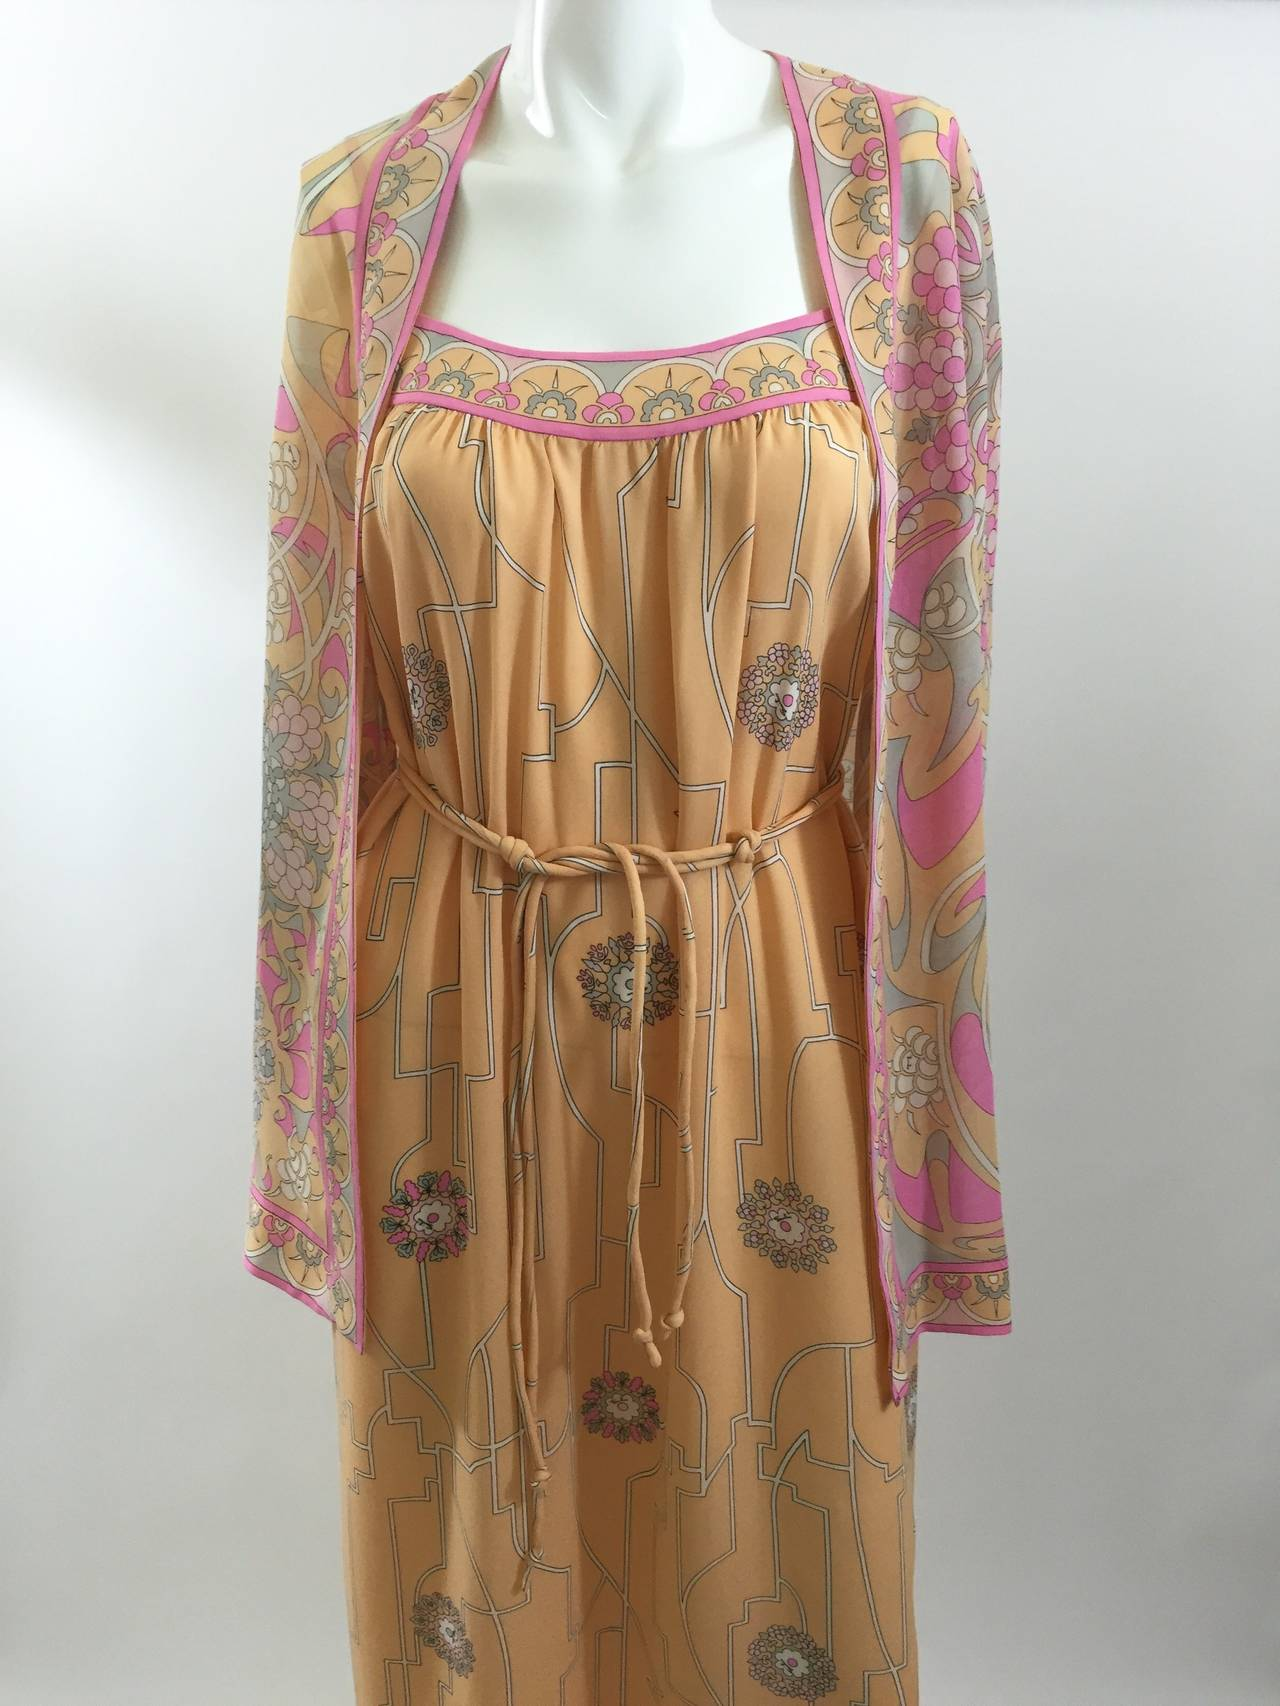 Stunning and ethereal Emilio Pucci light as a feather silk chiffon dress set.   The print of the dress is in soft pale colors of pink, white, gray and light cantaloupe.  Small flowers in different sizes  and designs dot the dress. Each flower's